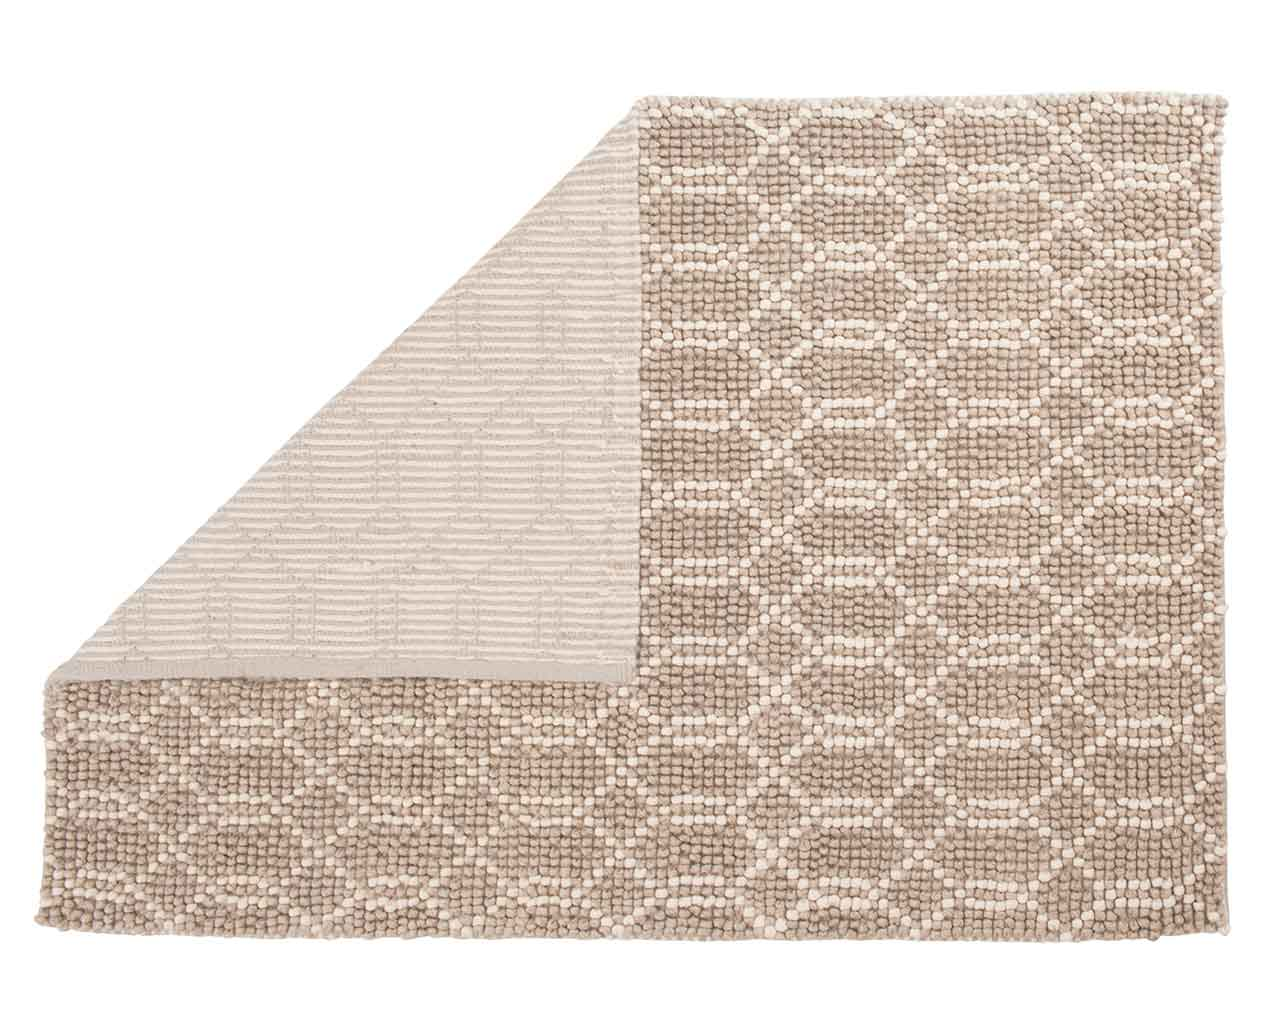 folded carpet square side comfortable rugs free shipping sukhi 1